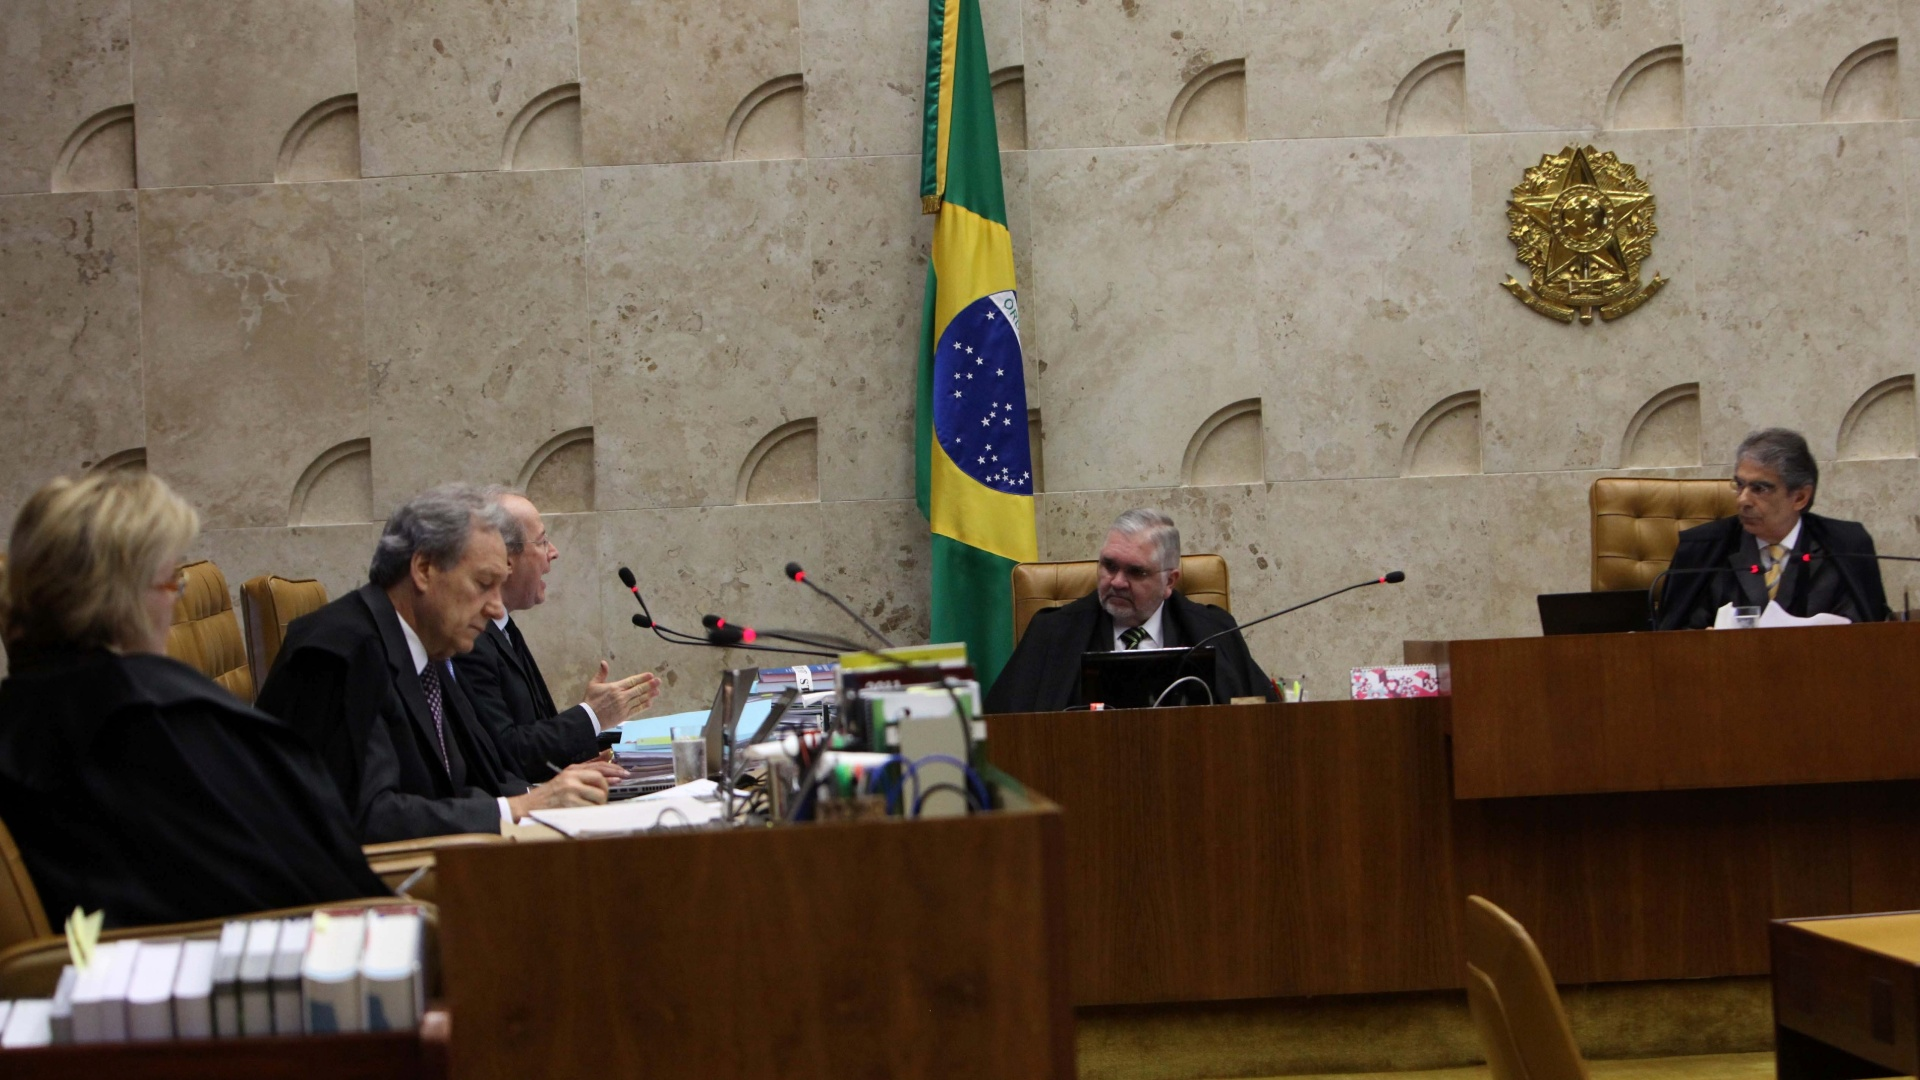 8.nov.2012 - Os ministros do STF (Supremo Tribunal Federal) condenaram Ramon Hollerbach, ex-scio do publicitrio Marcos Valrio, na sesso desta quinta-feira (8) do julgamento do mensalo, por evaso de divisas, corrupo ativa, peculato, lavagem de dinheiro e formao de quadrilha